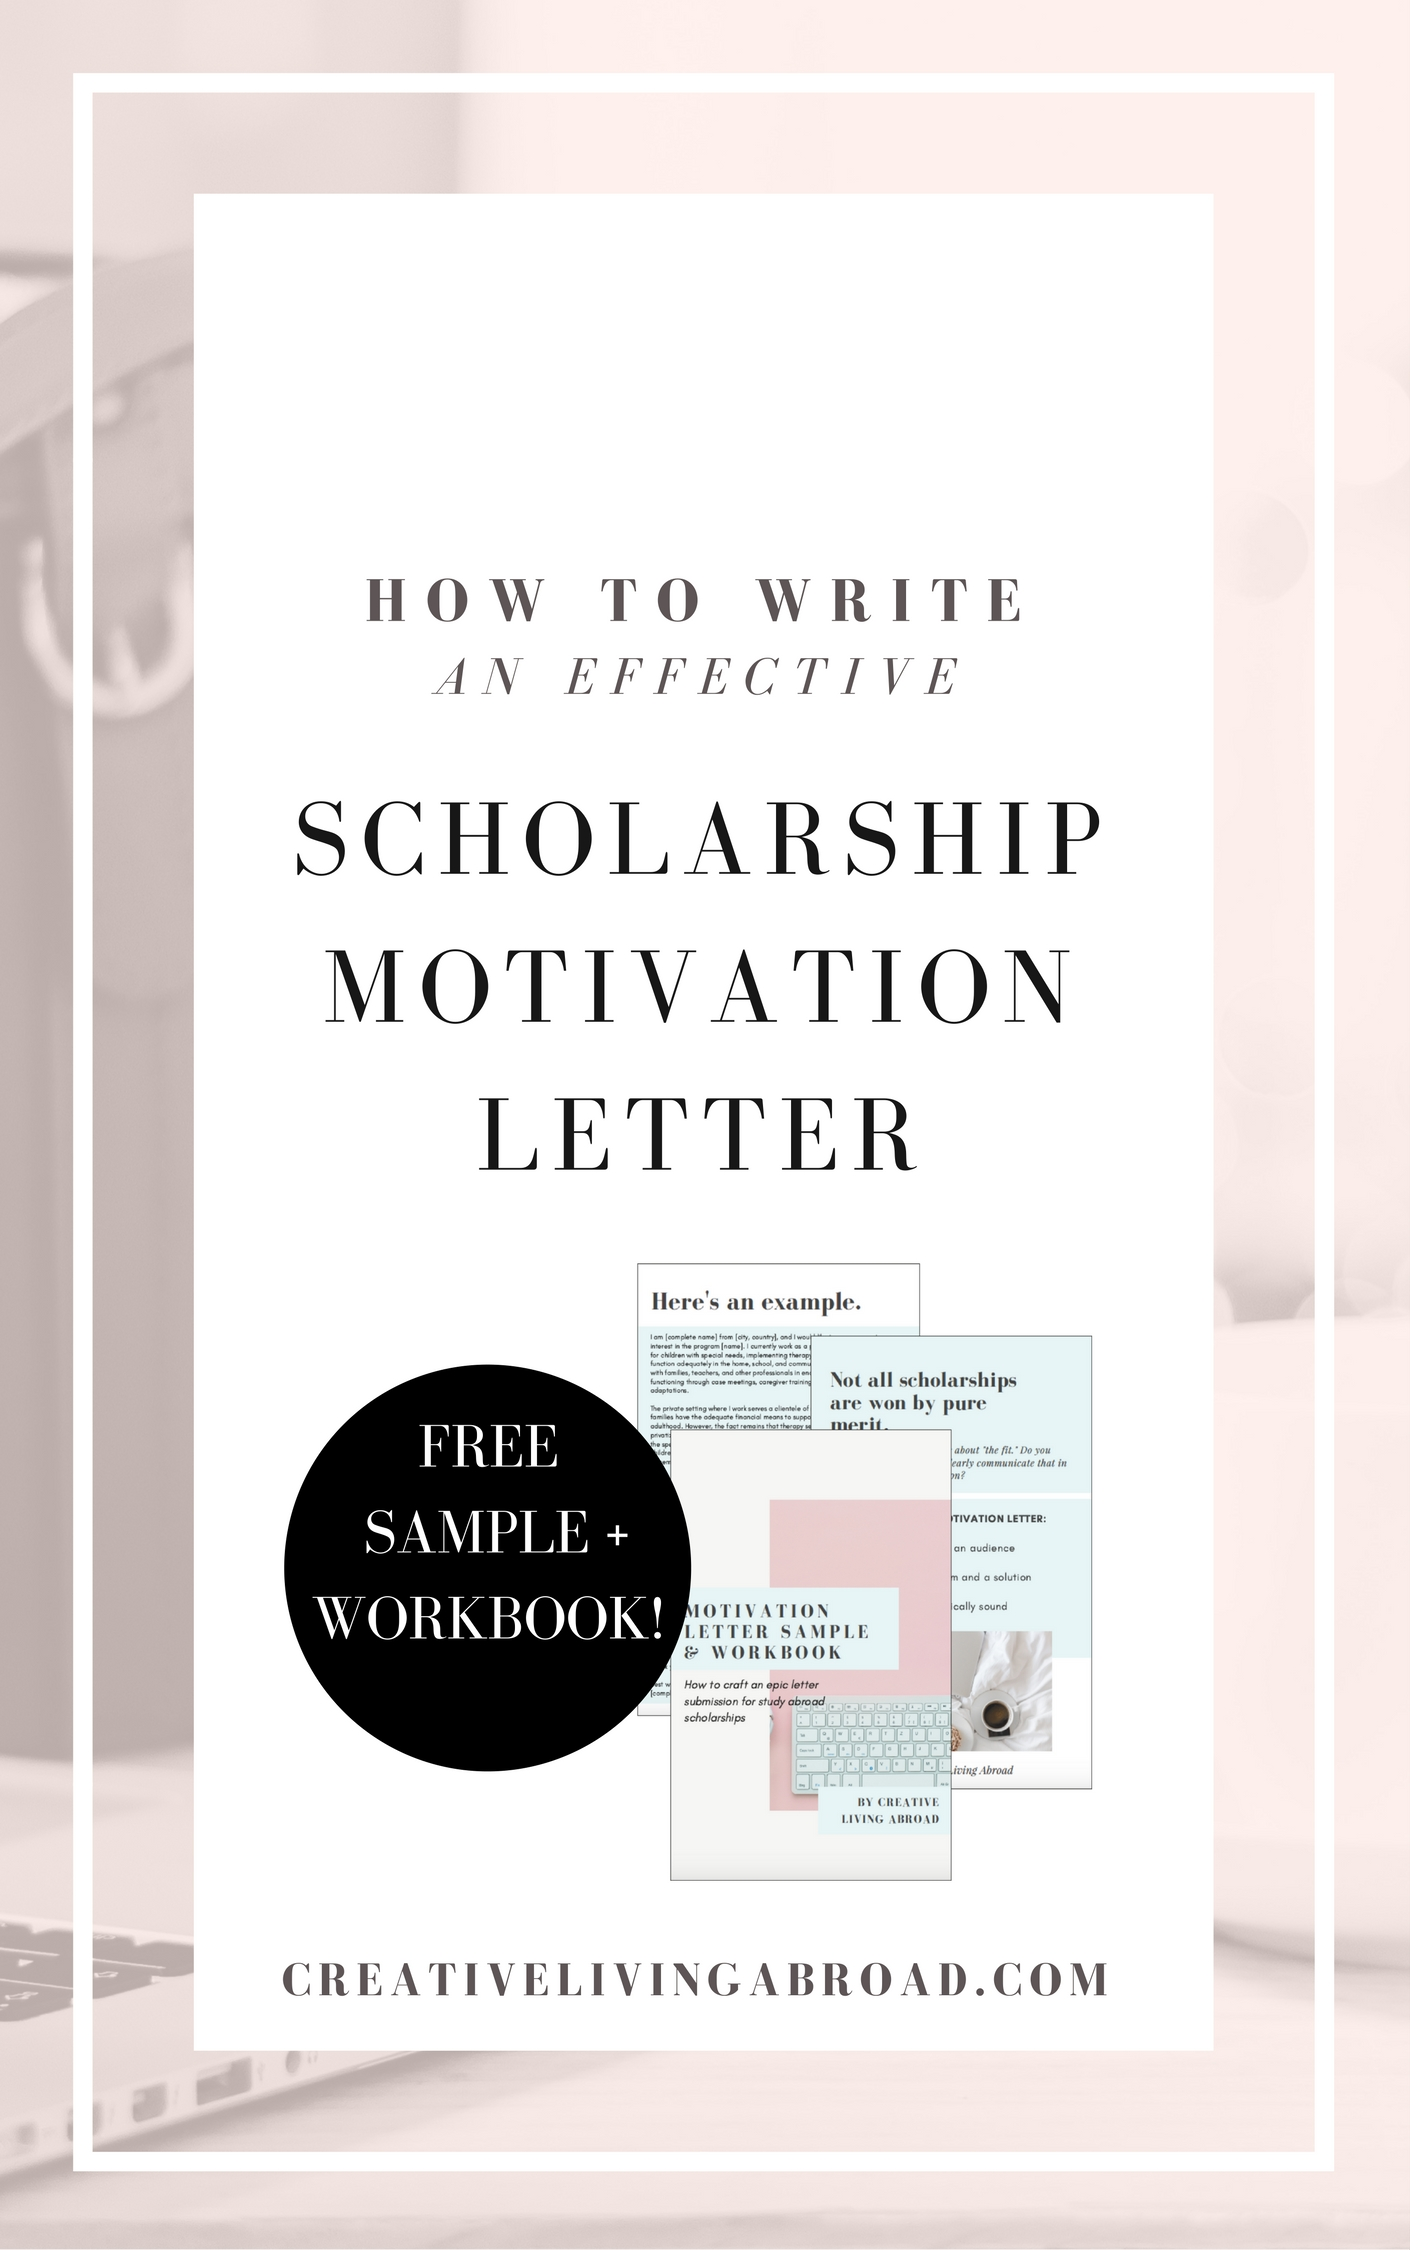 How to Write an Effective Scholarship Motivation Letter ...